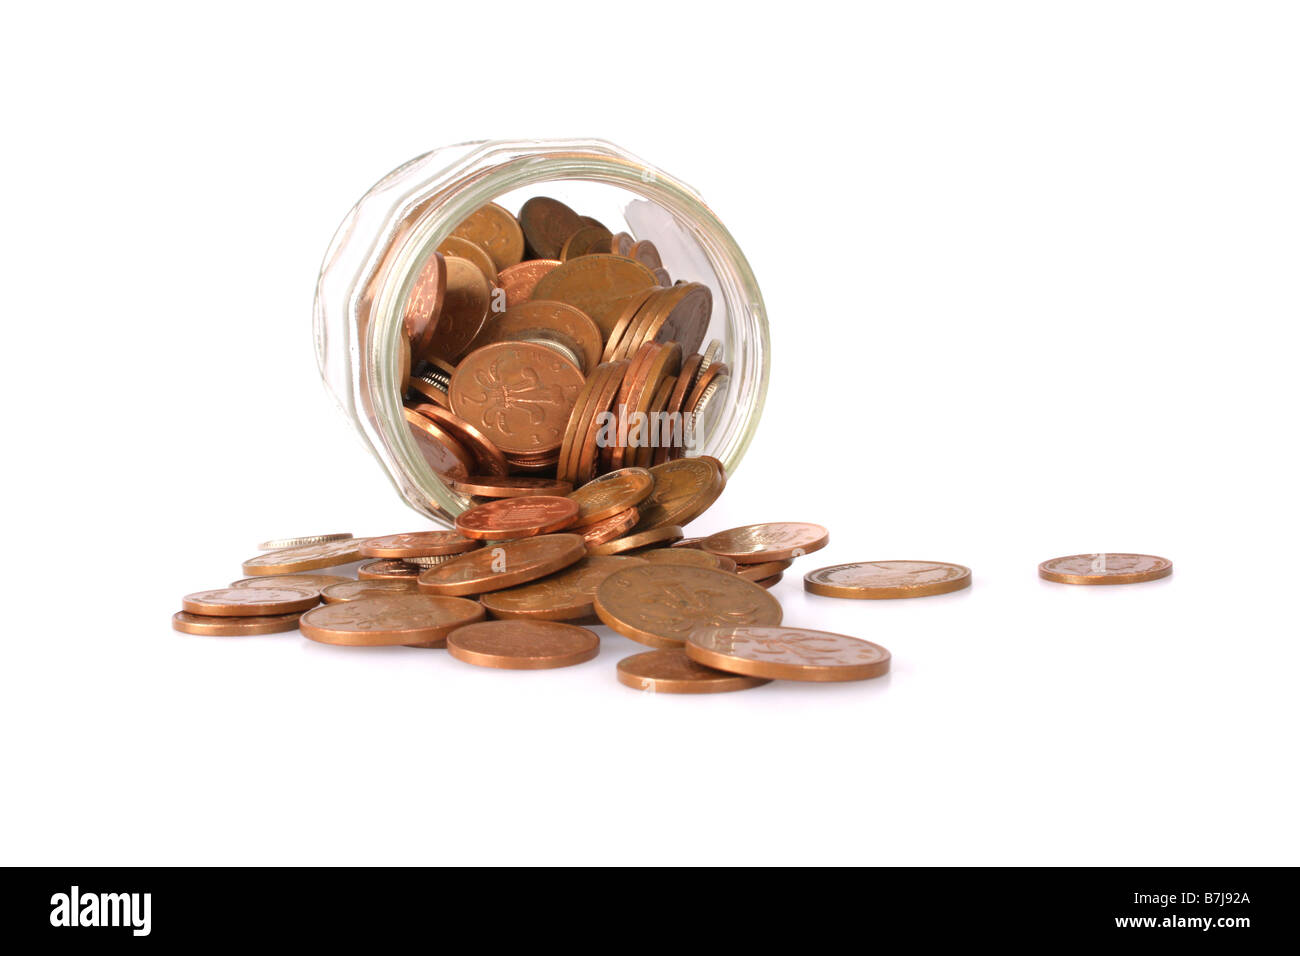 English coins spilling out of a jam jar. - Stock Image